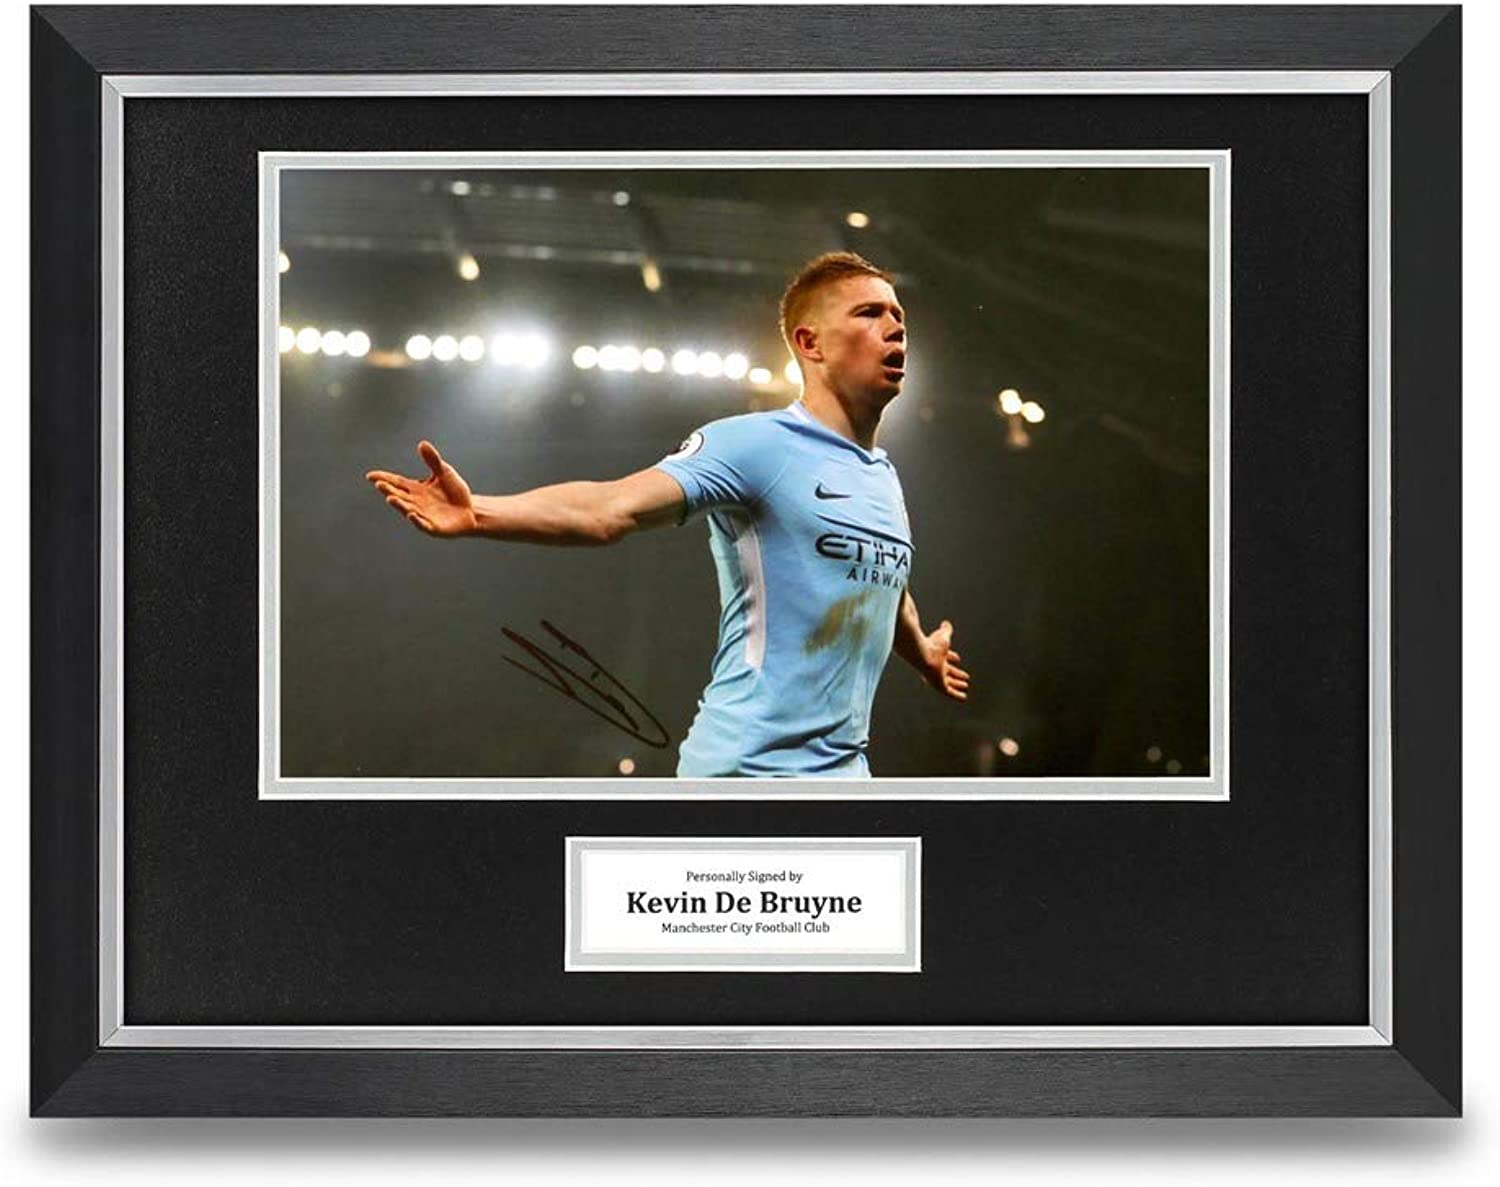 Kevin De Bruyne Signed 16x12 Framed Photo Display Man City Autograph Memorabilia